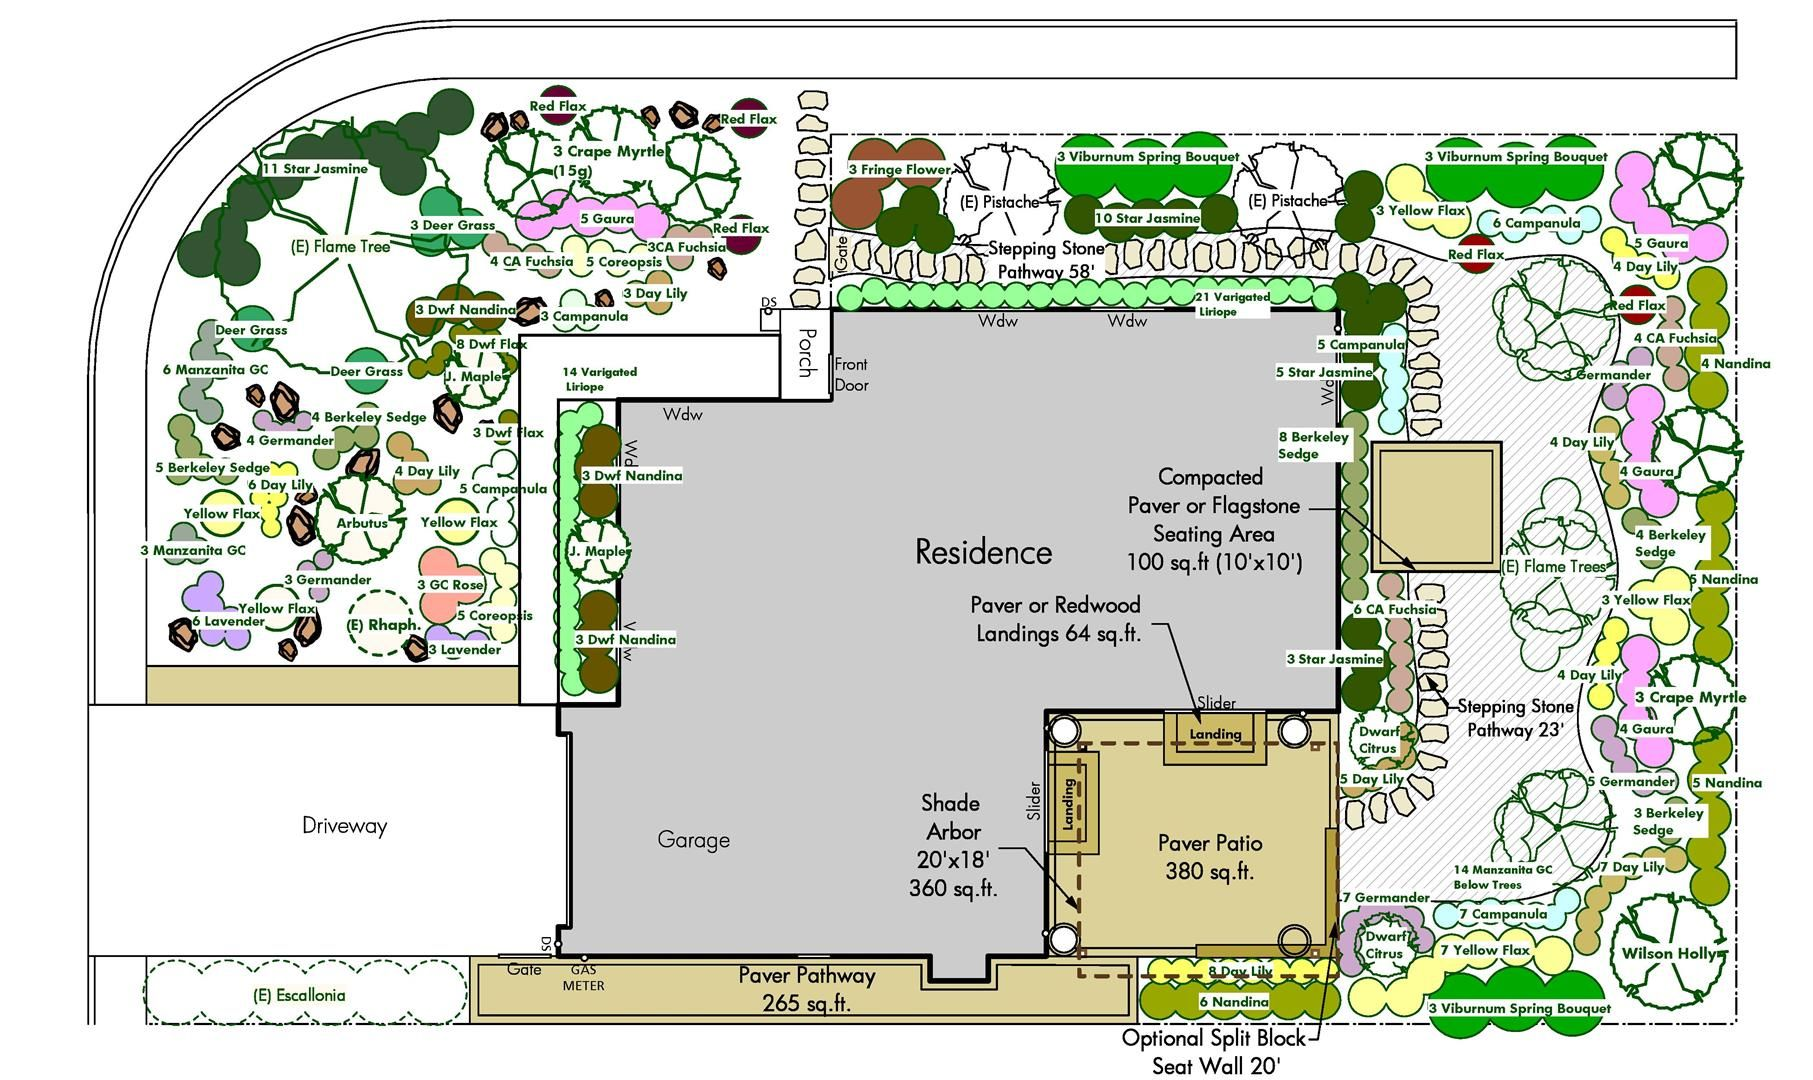 Very similar lot and house layout holy planting batman for Landscape house plan